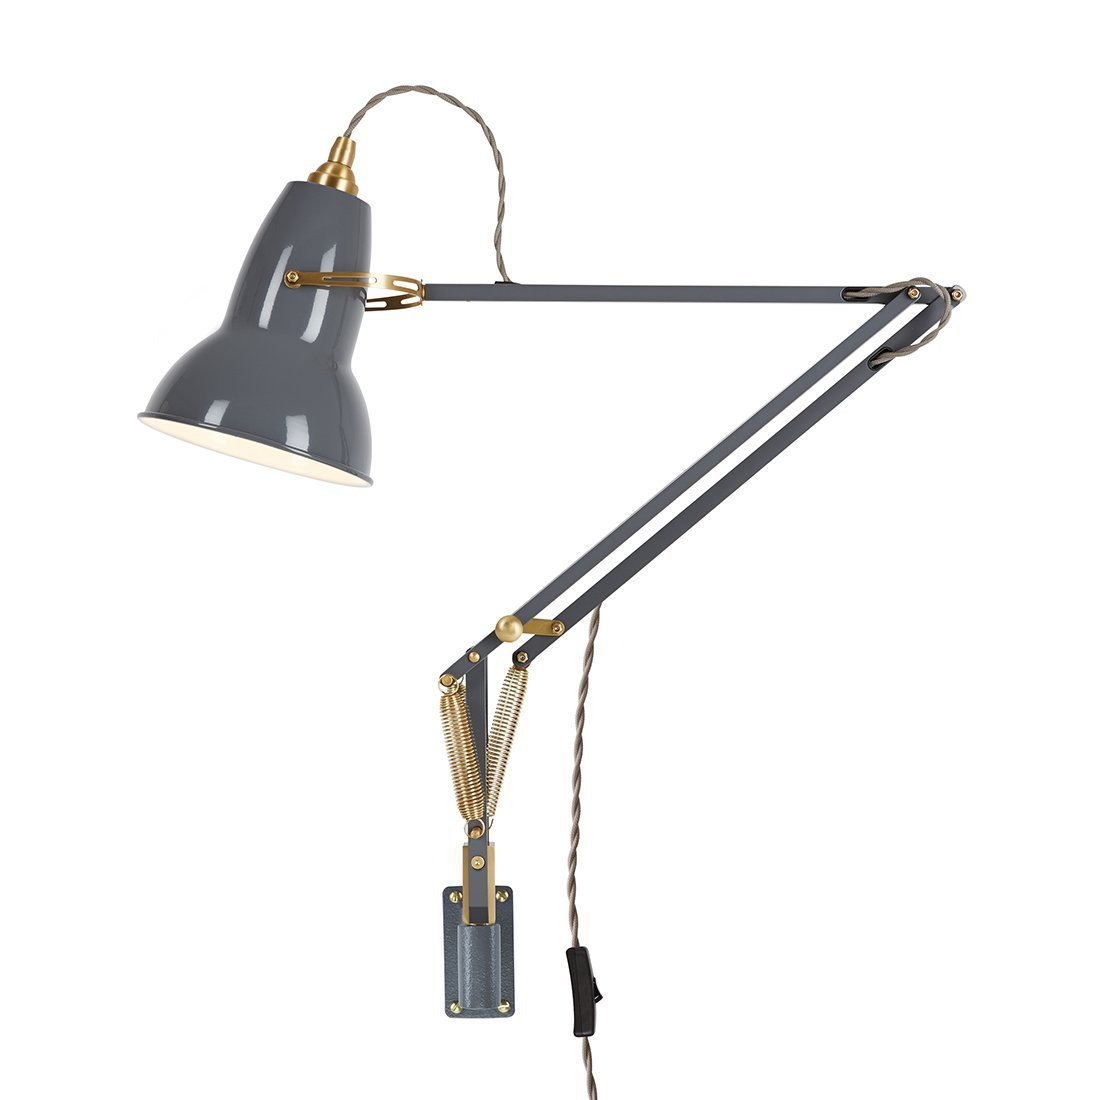 Anglepoise Original 1227 Brass Wall Mounted Wandlamp